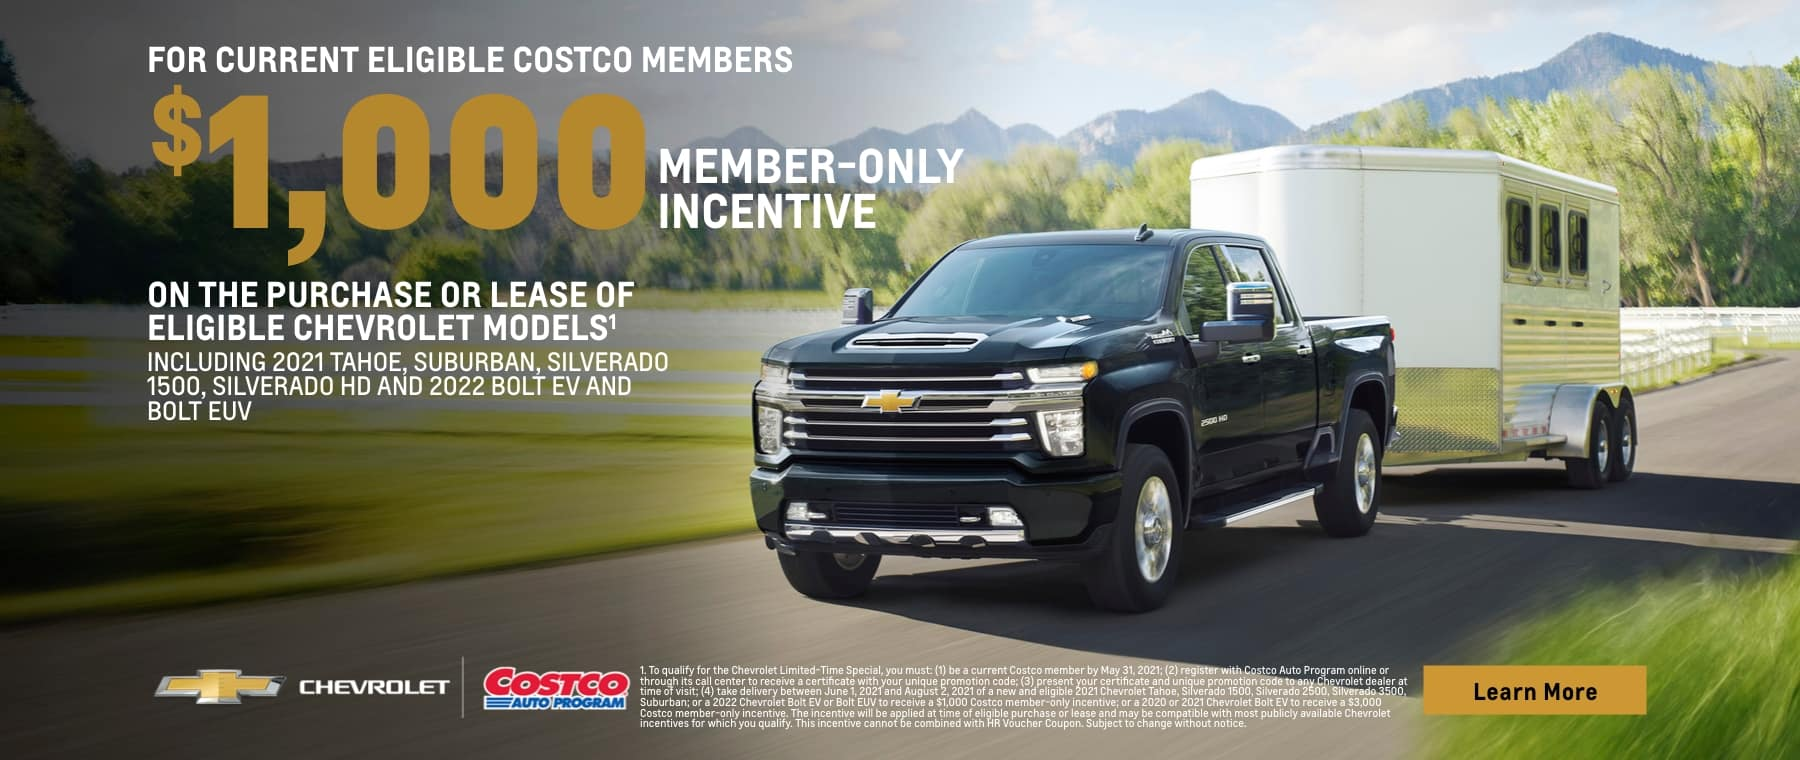 $1000 Member-only incentive on the purchase or lease of eligible models